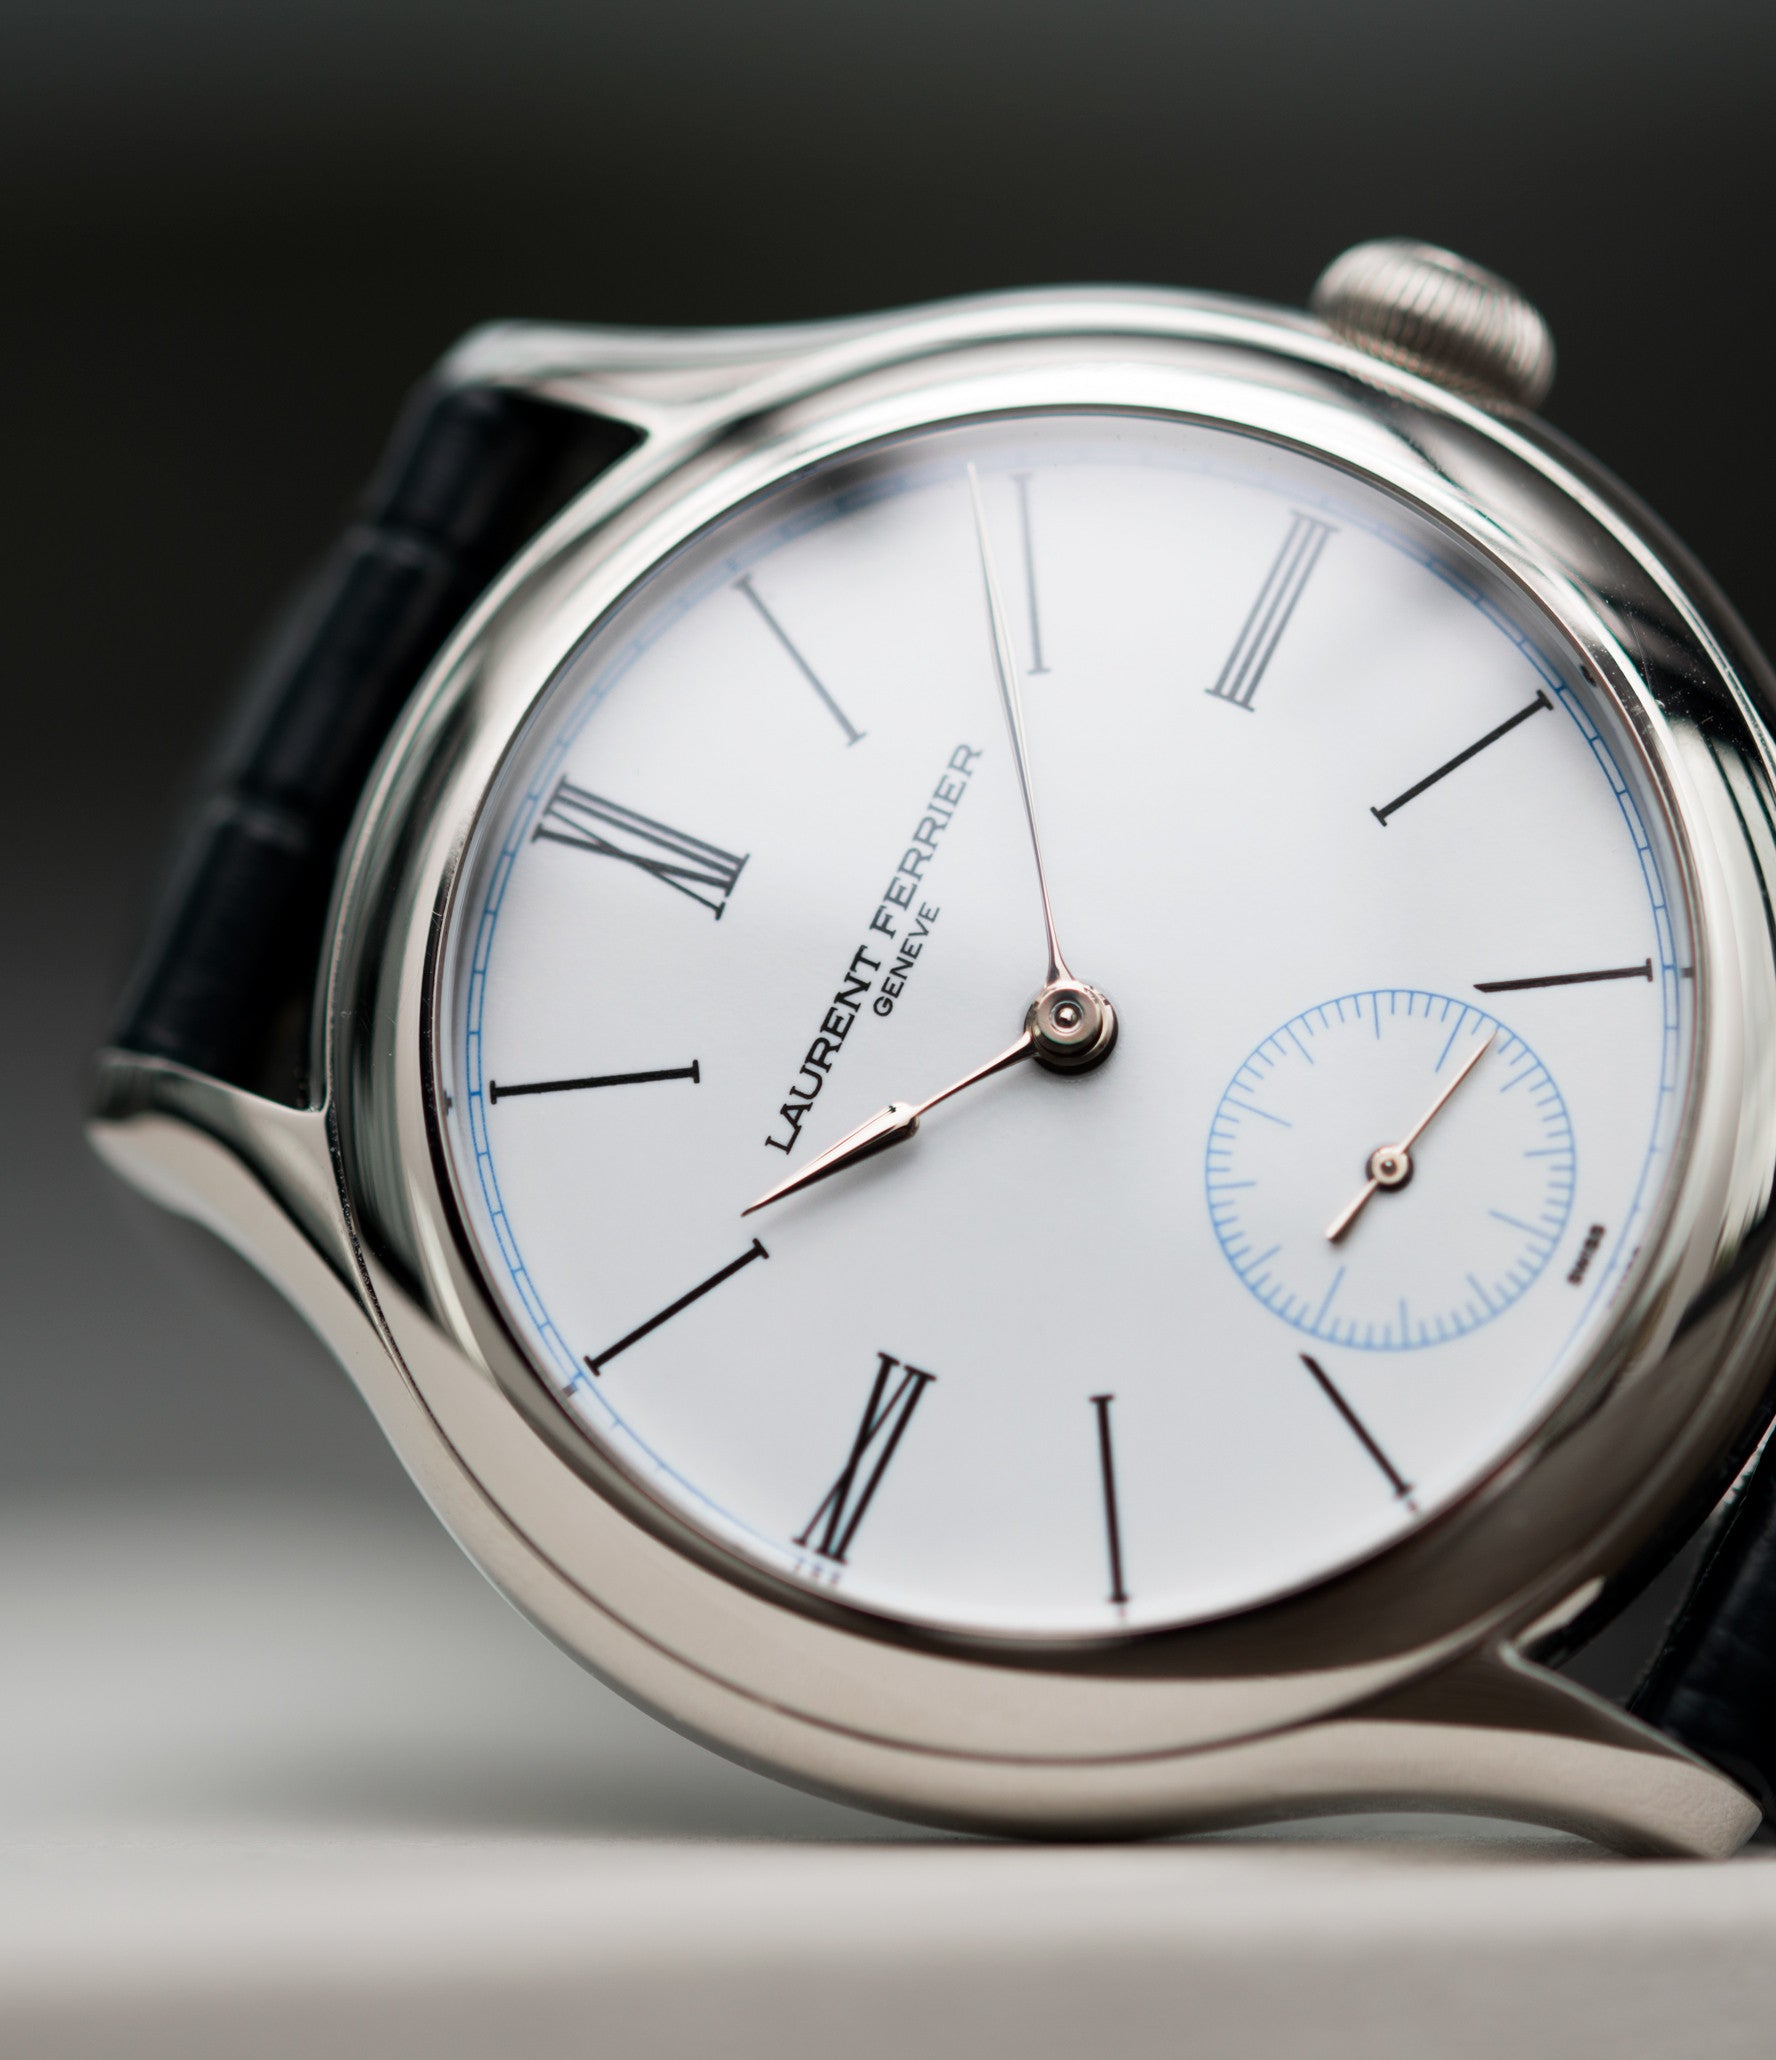 white enamel dial Laurent Ferrier Galet Micro-rotor LCF006 platinum enamel dial limited edition watch for sale online at A Collected Man London specialist independent watchmakers